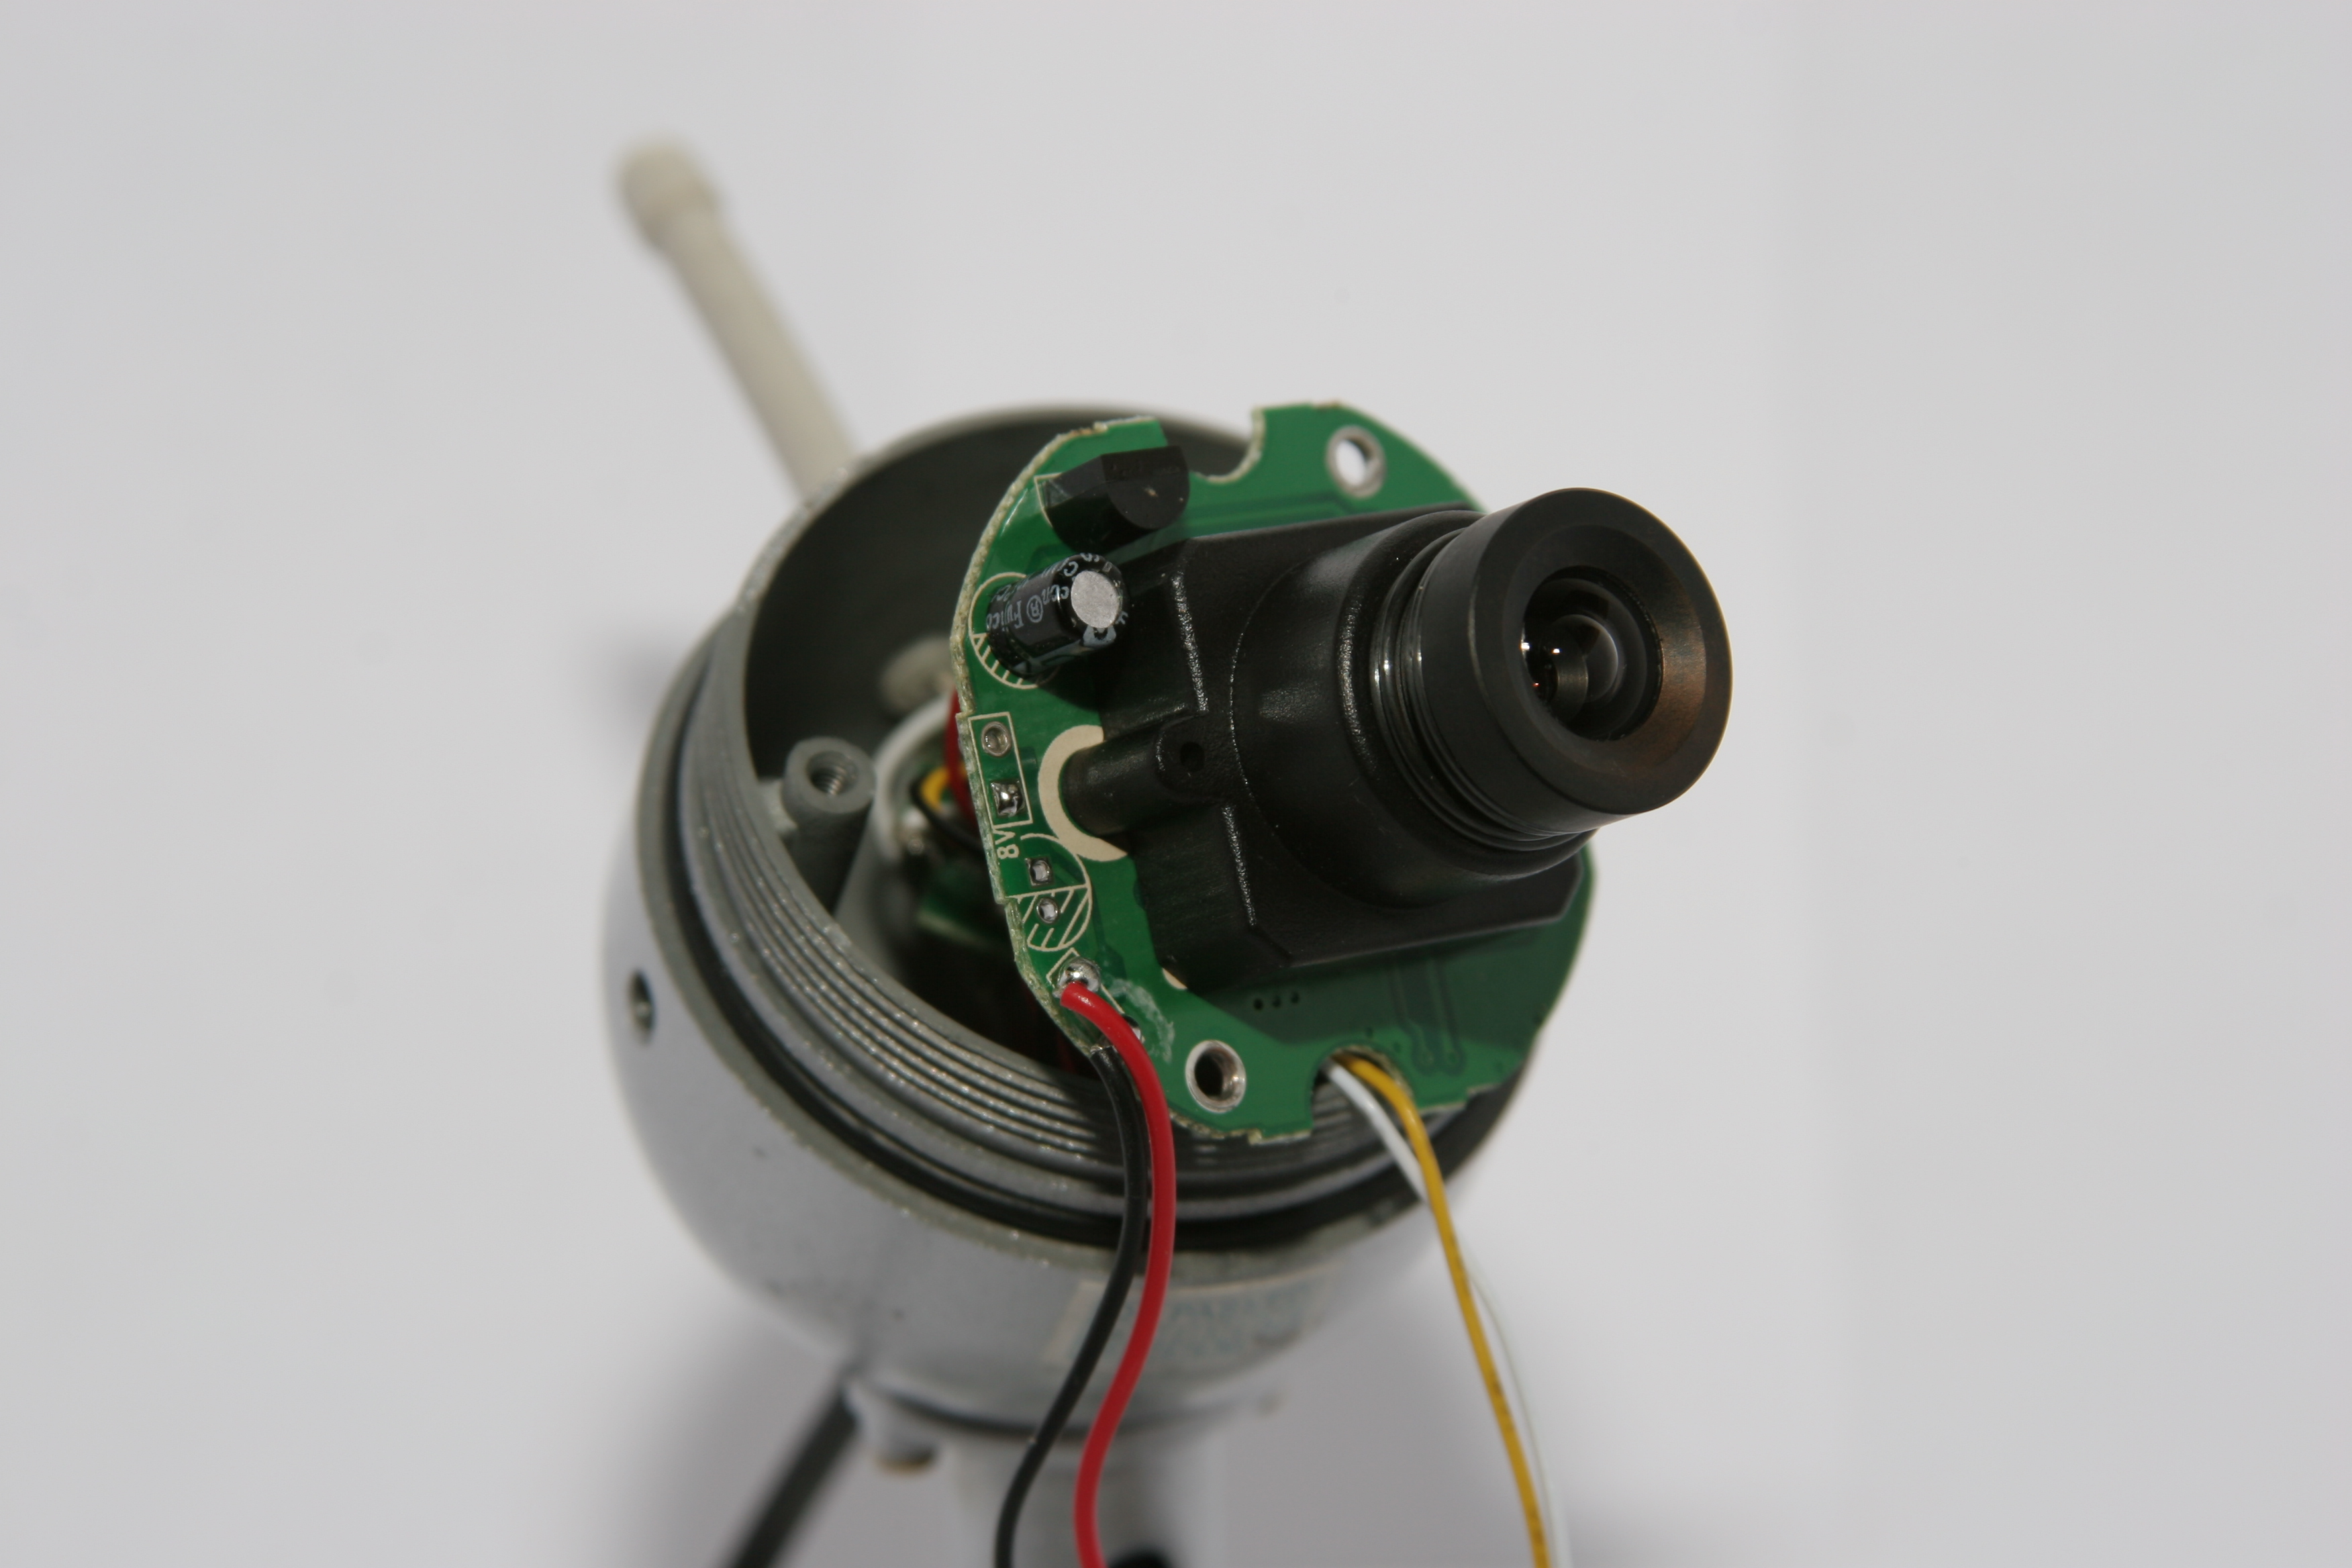 How To Fix A Ceiling Fan Light Switch Pull Chain likewise 18 4  munication Wire additionally Camera Wiring Schematic In Cars moreover Wireless Ccd Camera Circuit Diagram moreover Cnc Shield V3 Arduino Uno A4988 Stepper Driver Junefoo3979 190951296 2019 04 Sale P. on wireless spy camera wire diagram